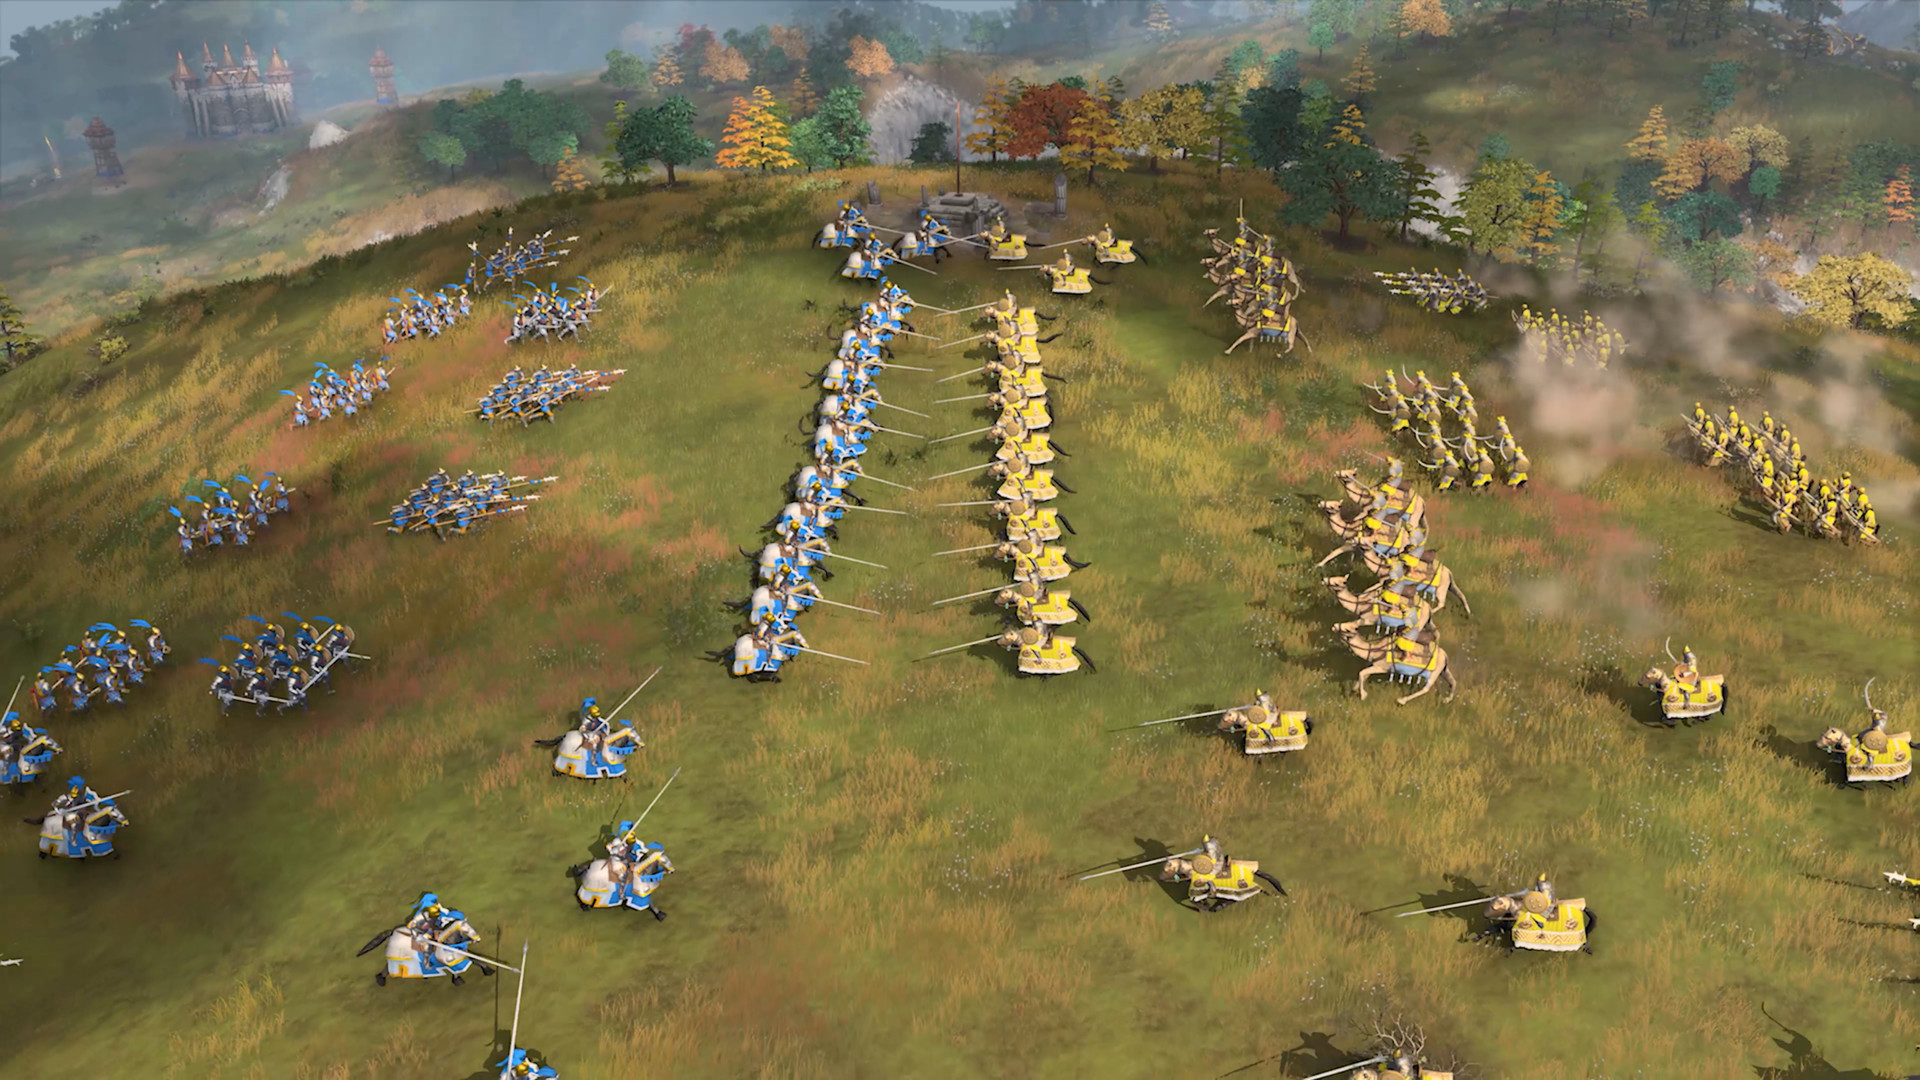 The Age of Empires 4 beta starts this week